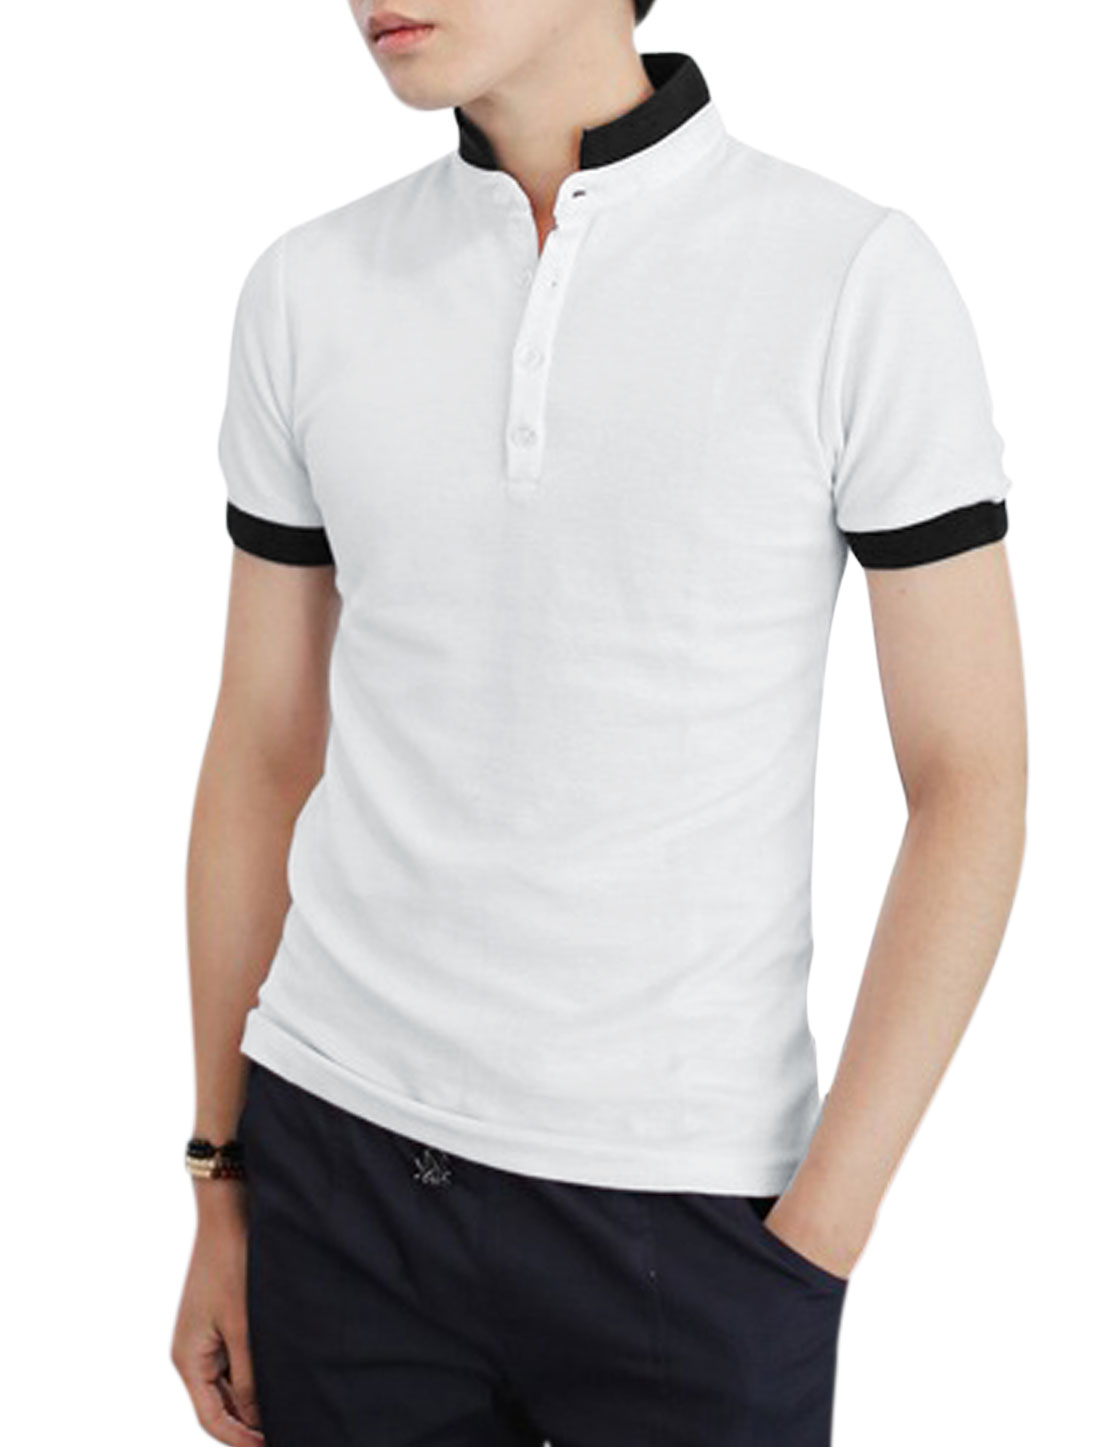 Man Panel Design Convertible Collar Trendy Slim Polo Shirt White S